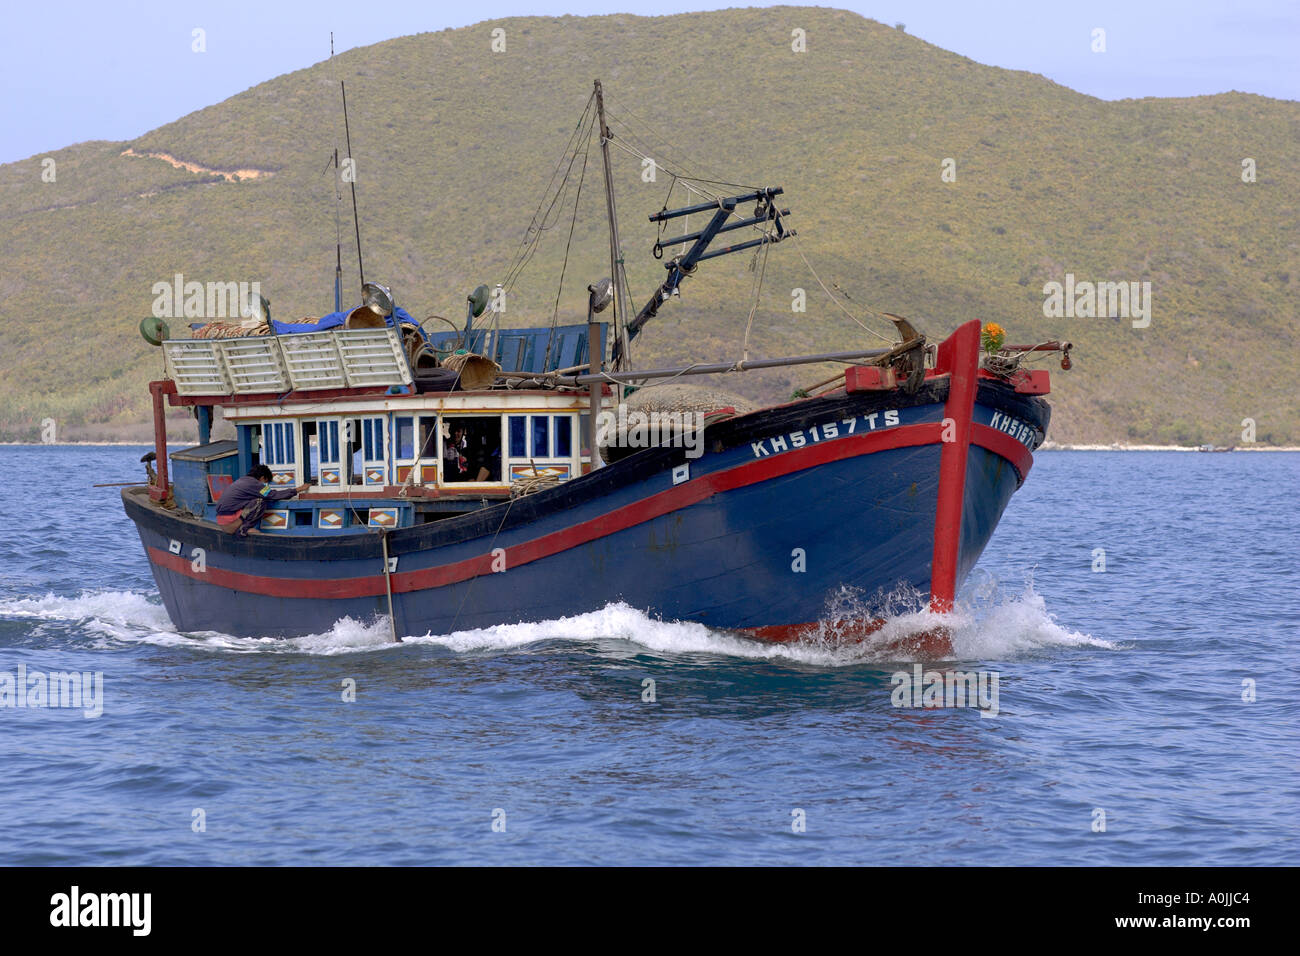 A vietnamese fishing boat off nha trang vietnam stock for Party boat fishing near me